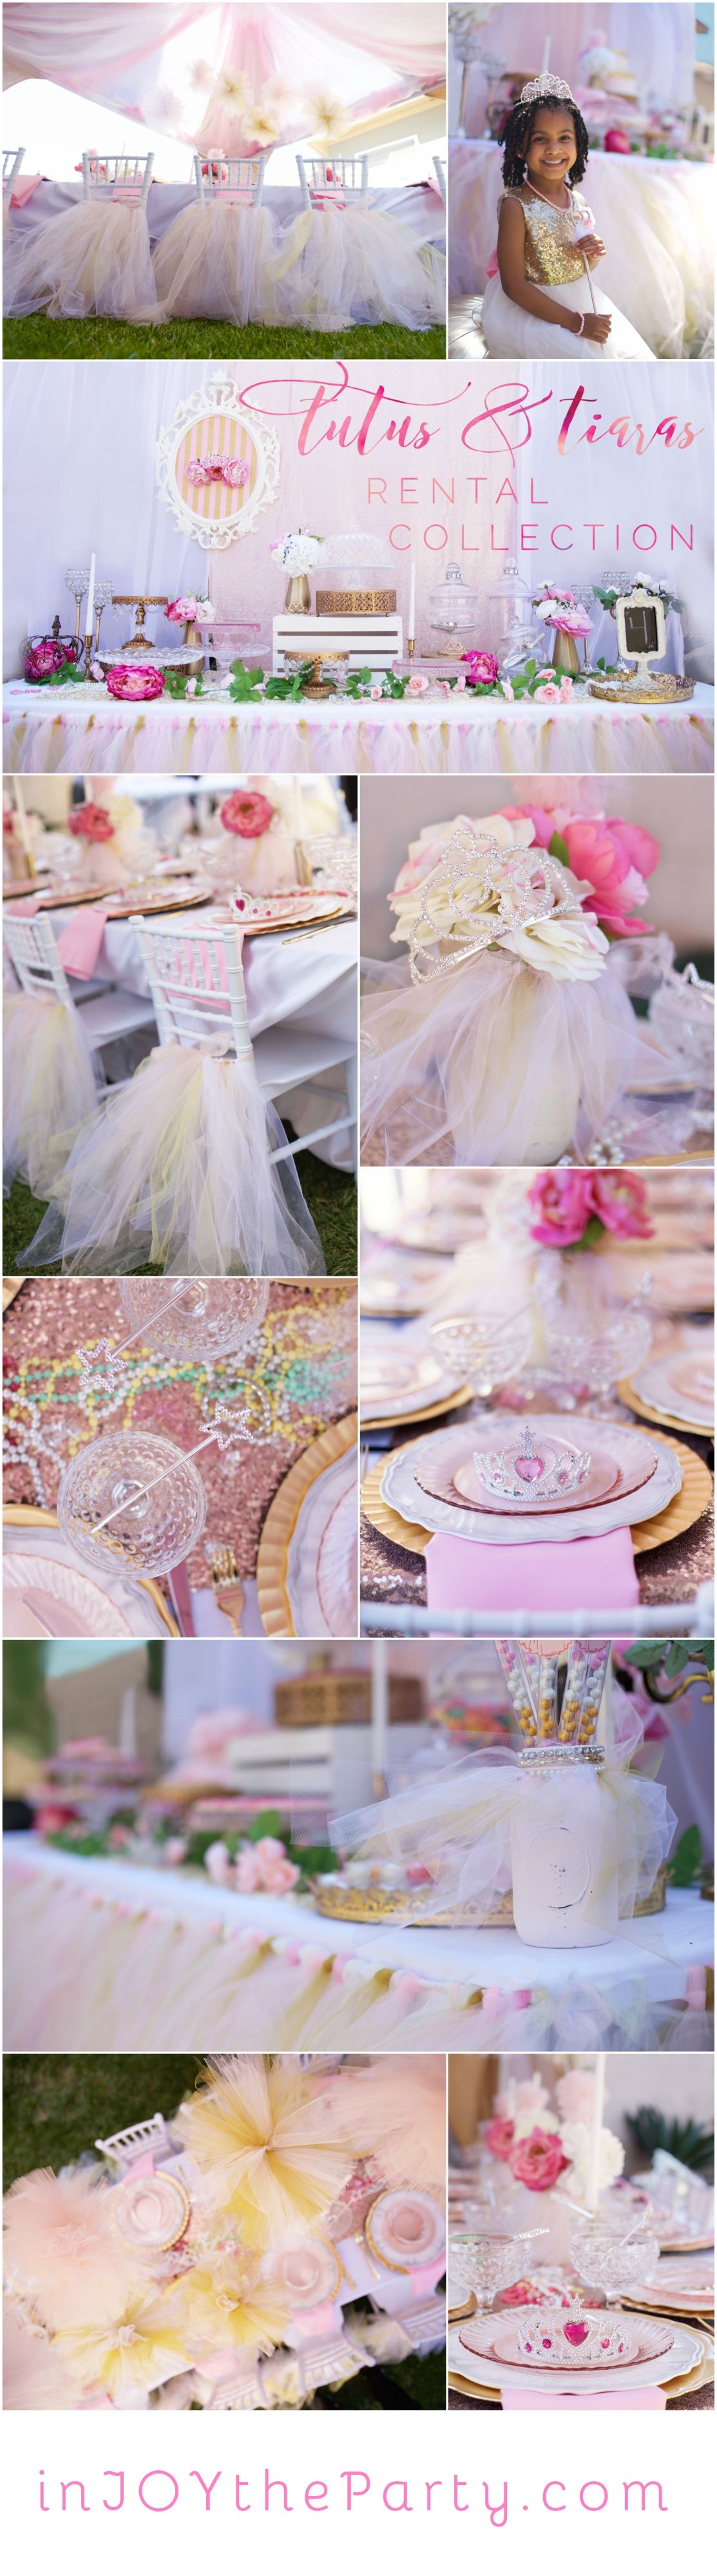 A Princess Party rental collection with an ensemble of ...